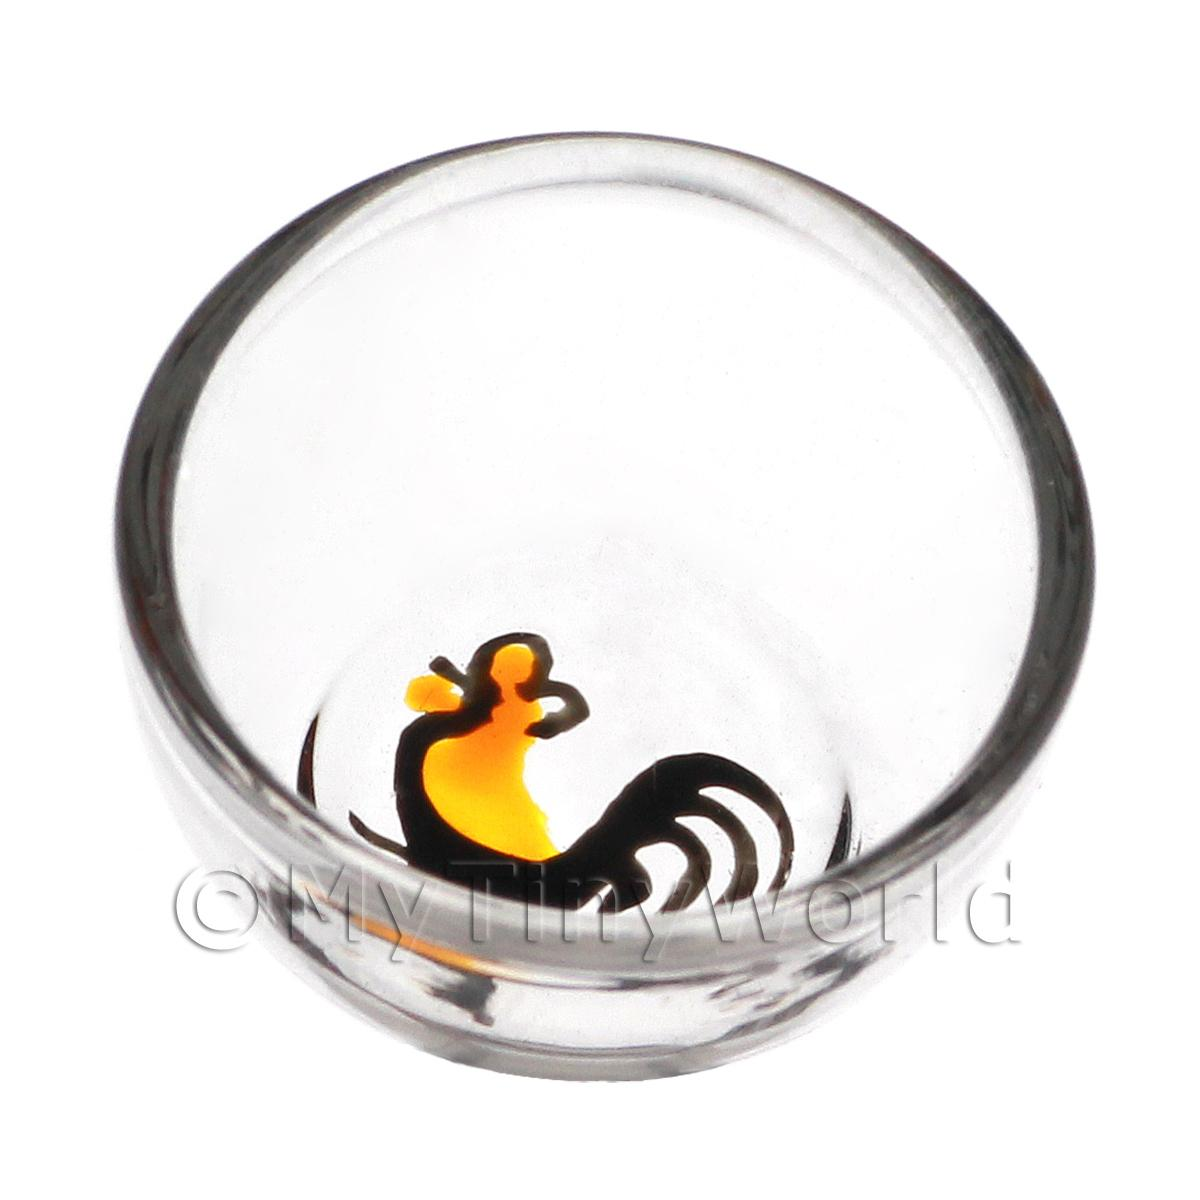 Dolls House Miniature Handmade Glass Rooster Mixing Bowl